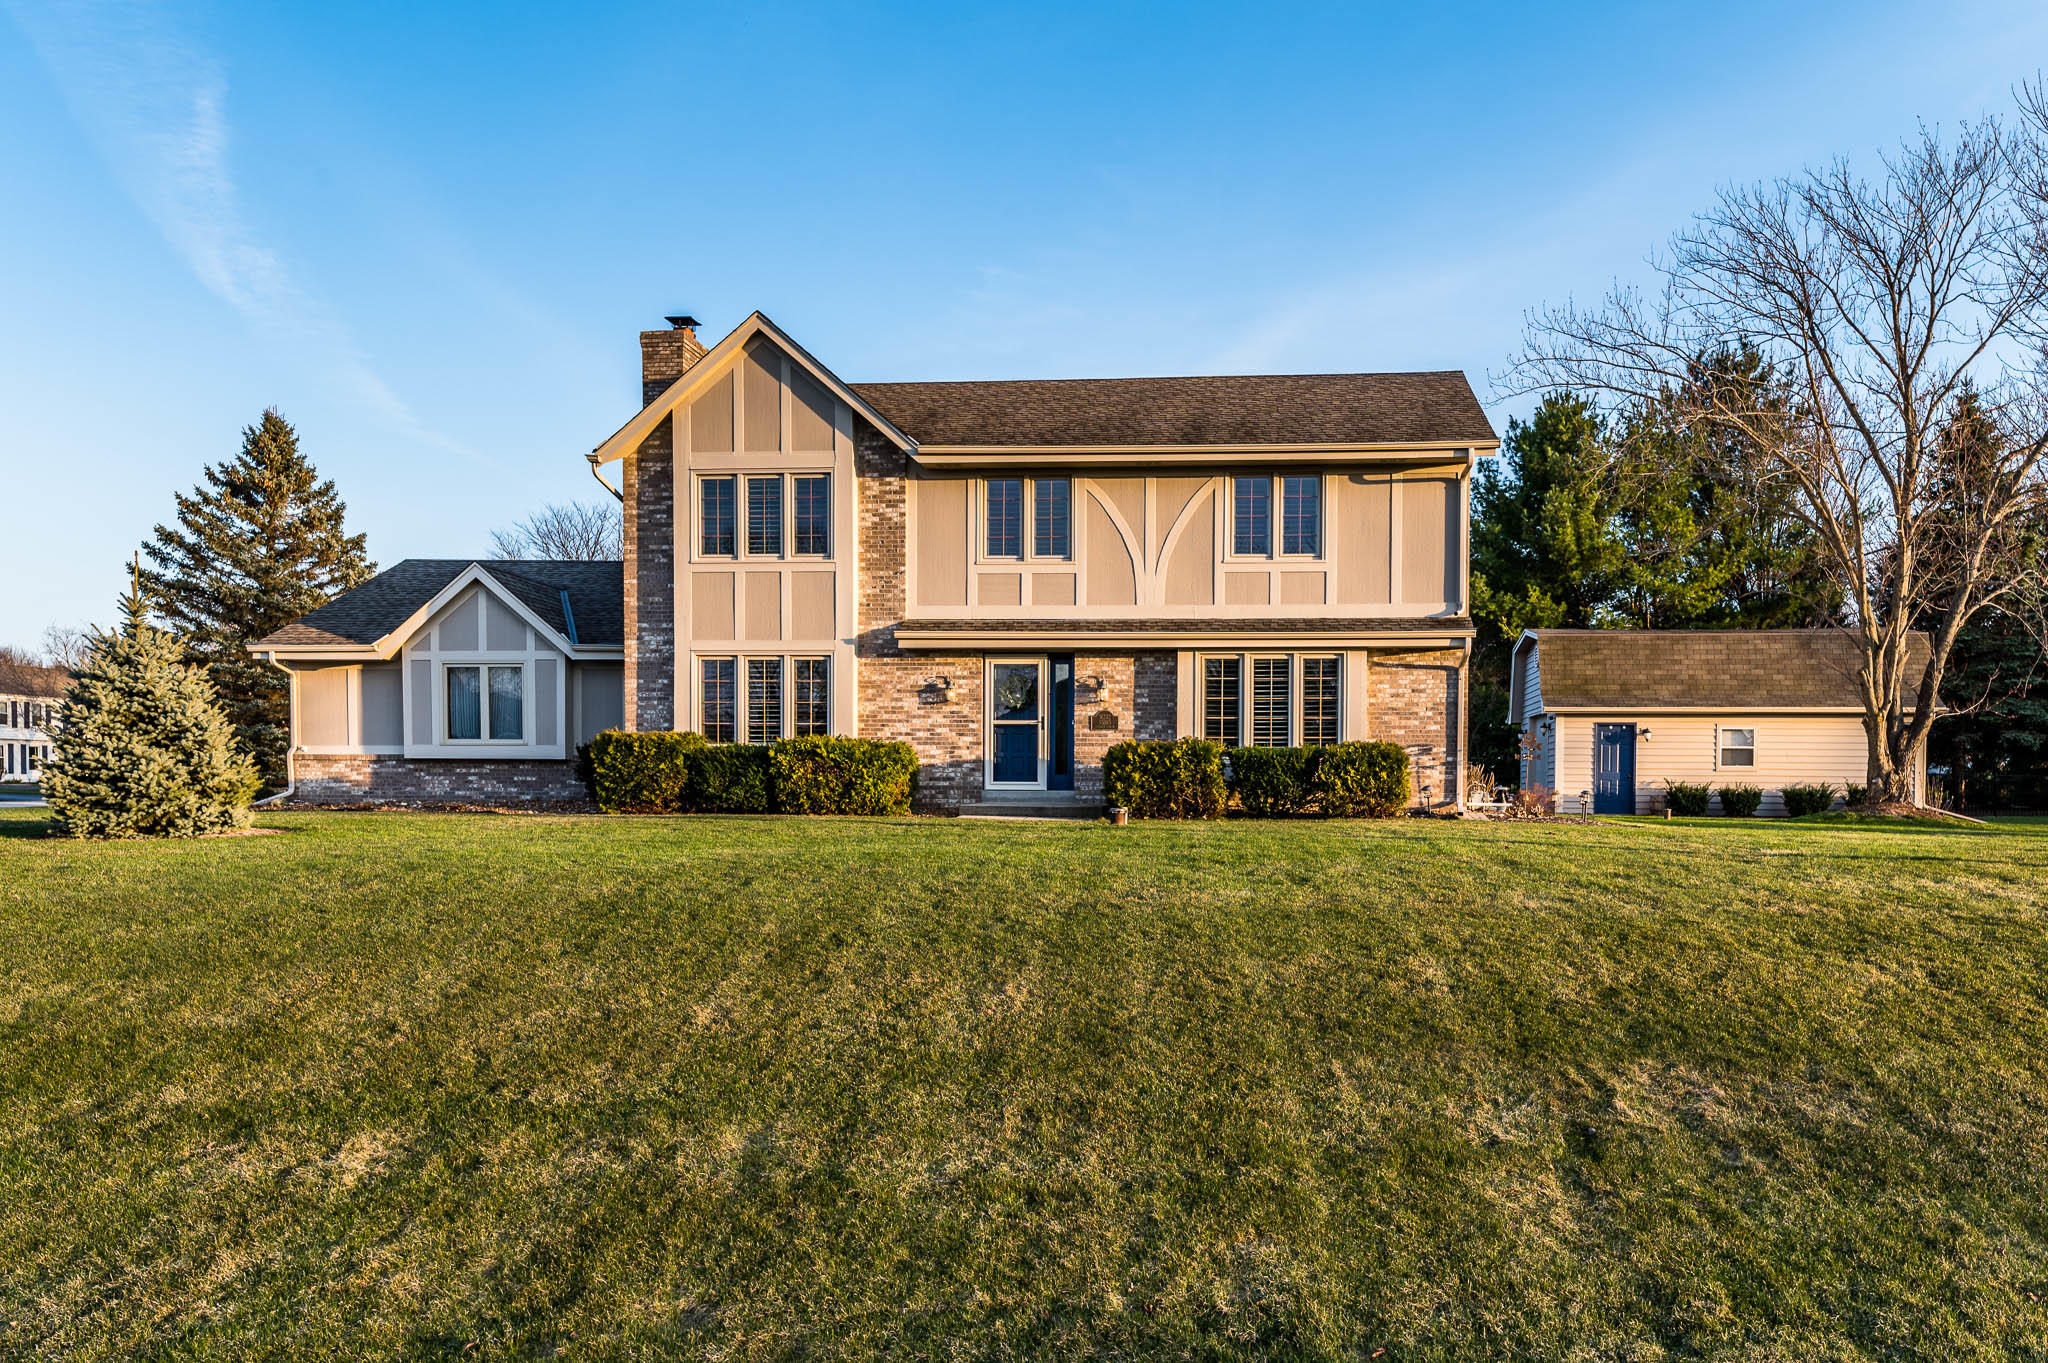 Photo of W232S5185 Hunters Hollow, Waukesha, WI 53189